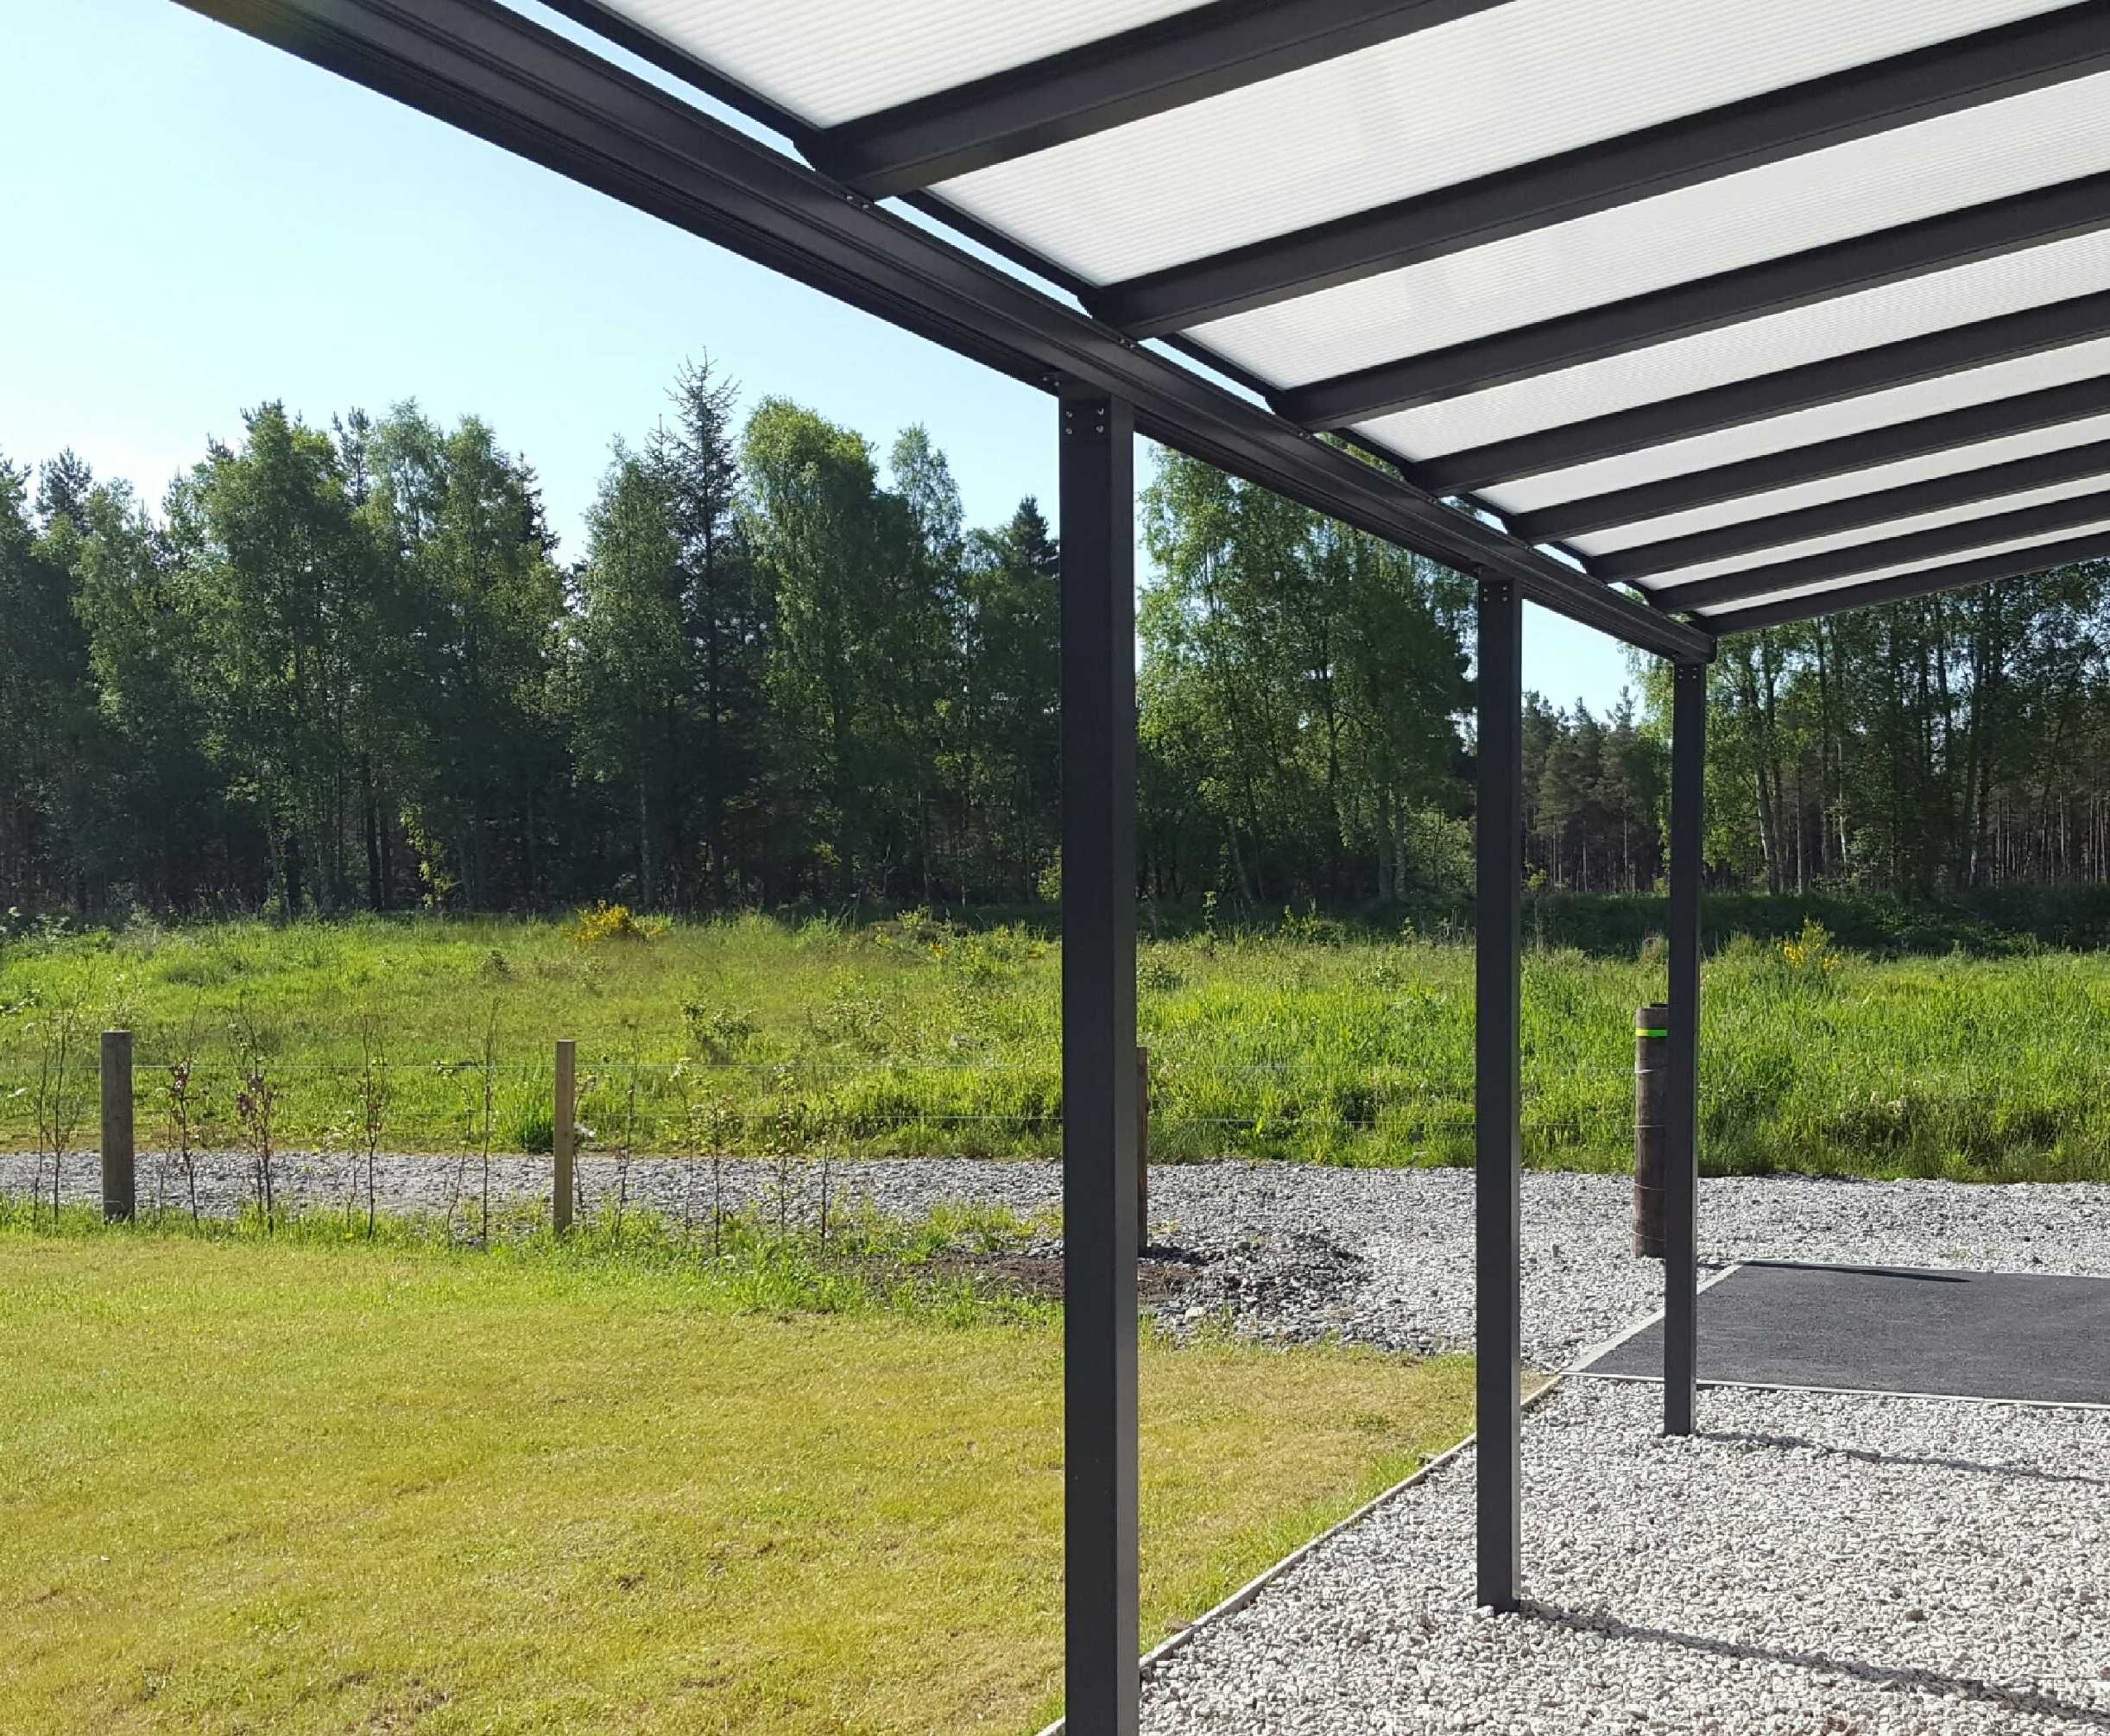 Omega Smart Lean-To Canopy, Anthracite Grey, UNGLAZED for 6mm Glazing - 4.9m (W) x 2.0m (P), (3) Supporting Posts